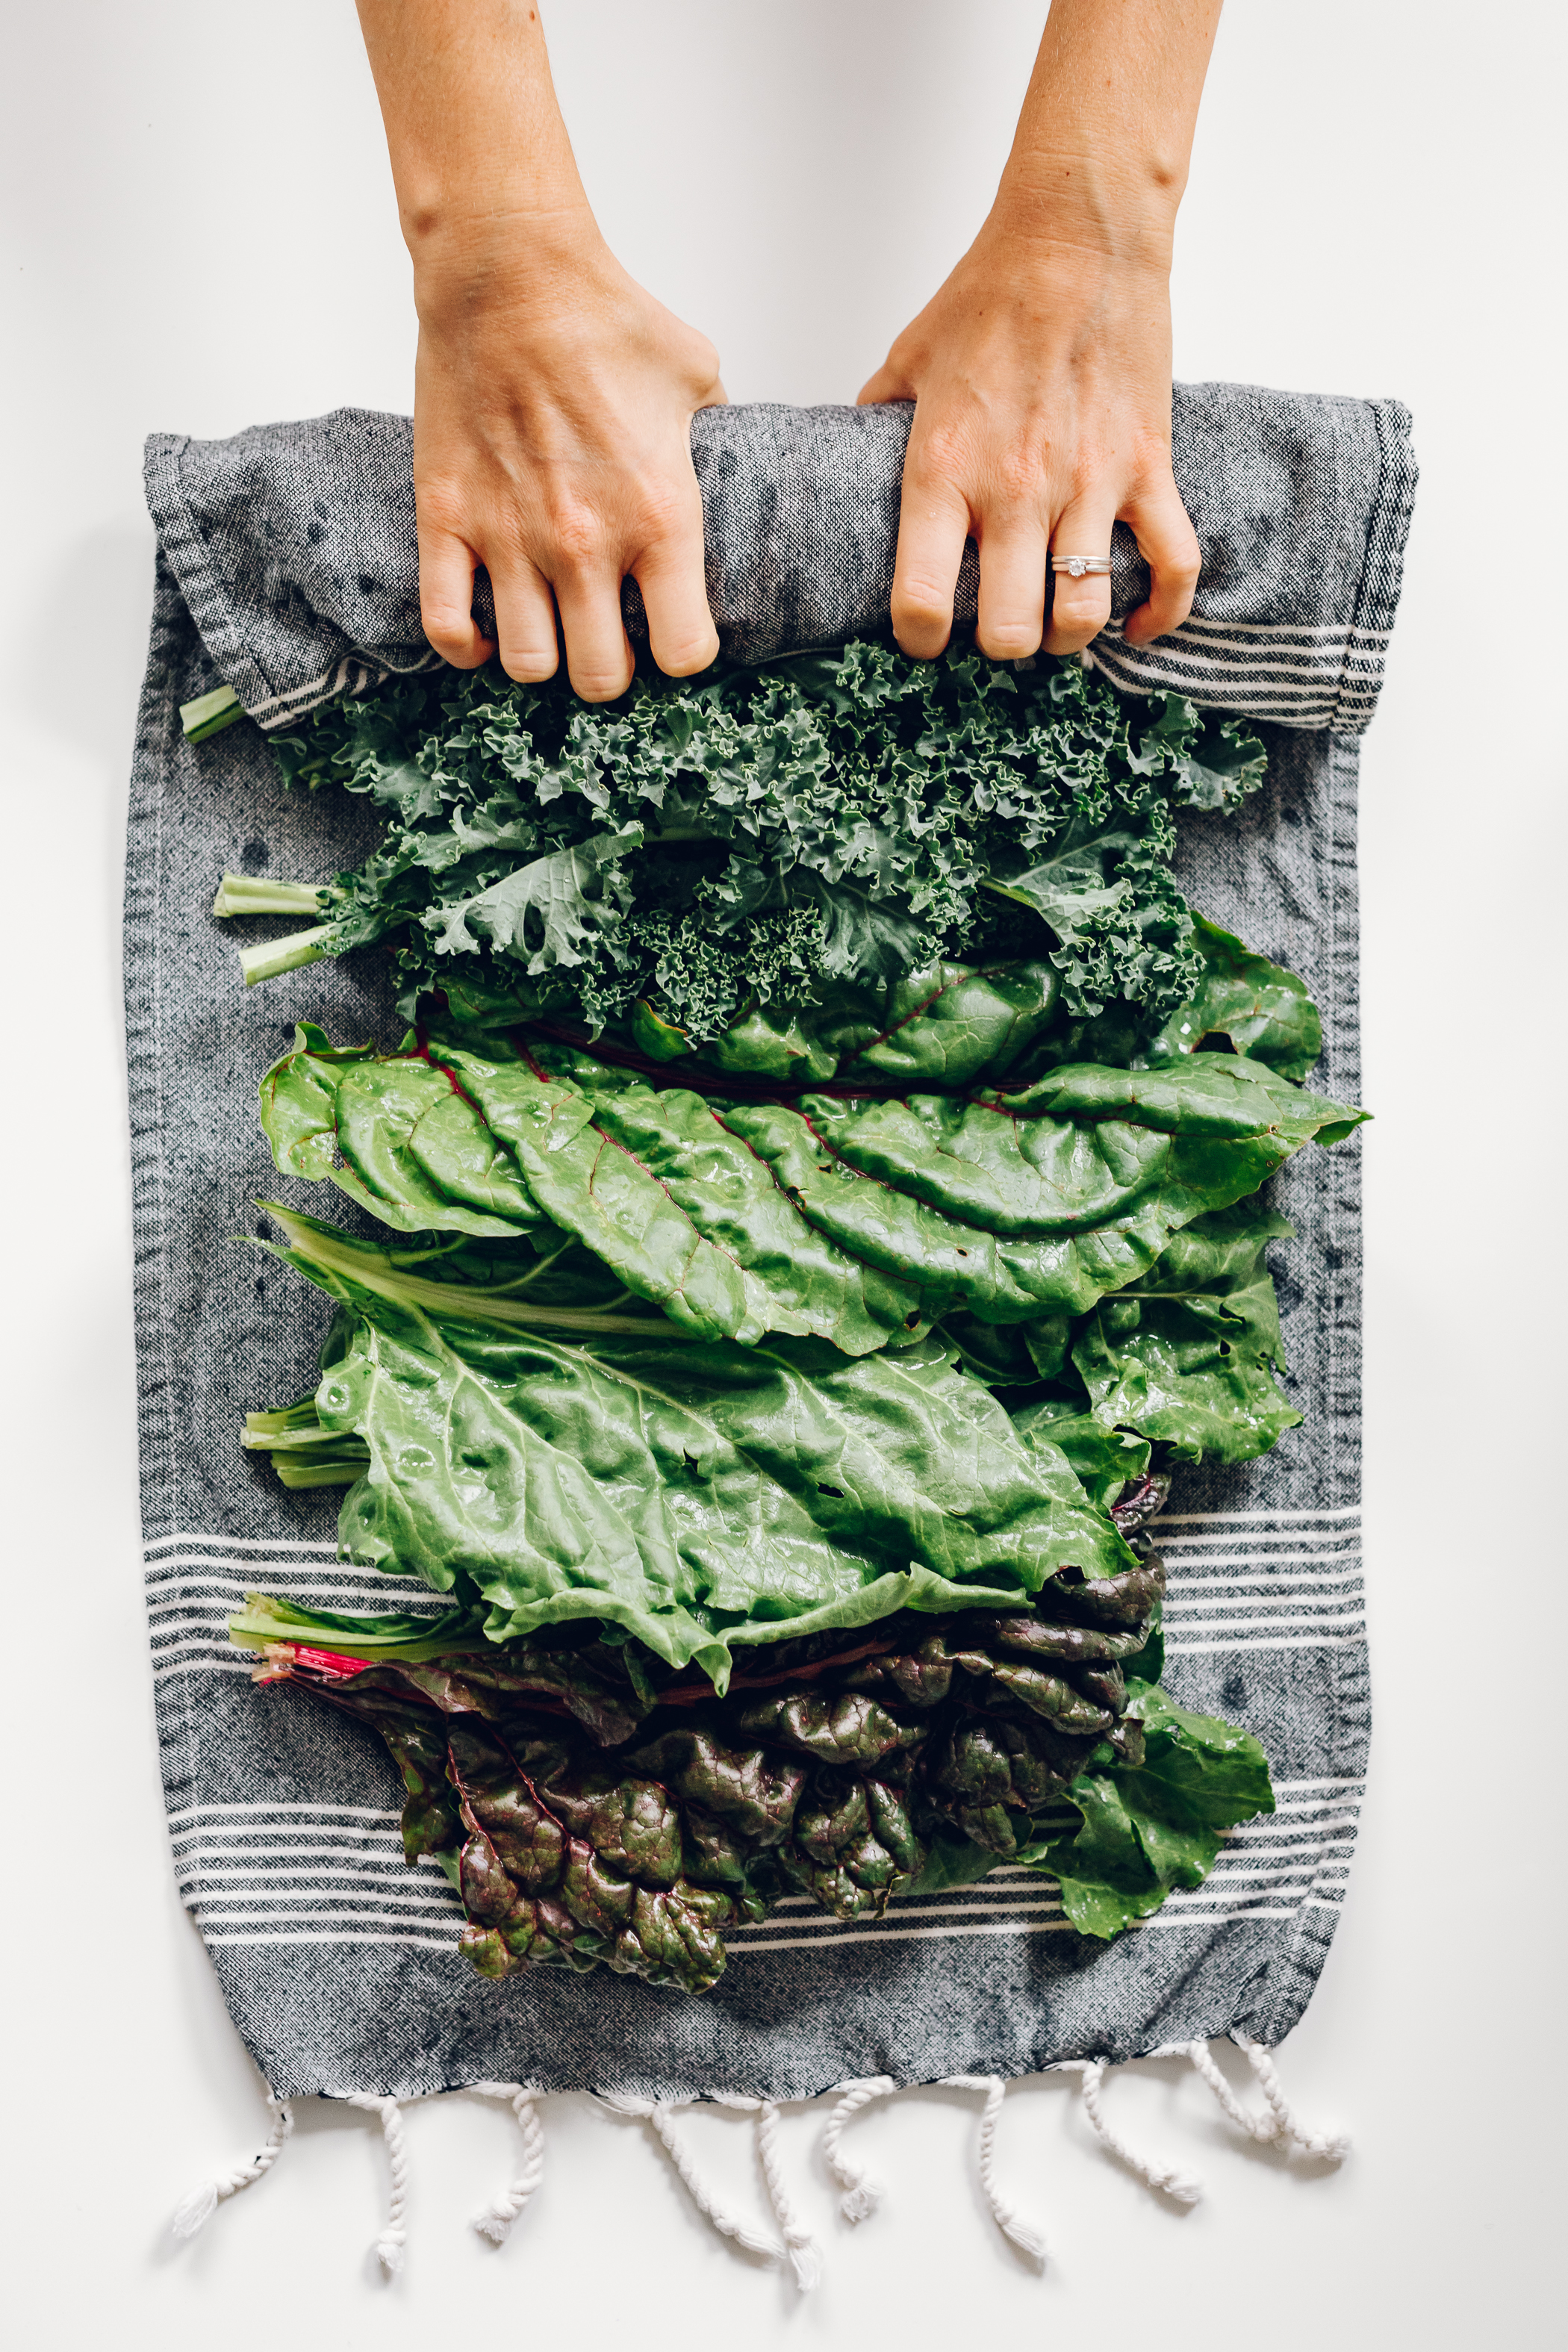 Sturdy Greens - Kale and chard are the two in this category I purchase the most often. They hold up well to being rolled because they are sturdier and require just a little moisture to keep crisp. This method keeps them fresh for one week.Step 1: Lay out a cotton kitchen towel.Step 2: Separate the leaves and rinse well. Give them a good shake.Step 3: Lay out the leaves on the towel, with a few overlapping.Step 4: Roll the leaves up in the towel, applying some pressure to minimize air and wrap tightly.Step 5: Store in the fridge on a shelf, or if you have room, in the crisper drawer (best).Tip: You may need to unroll and add a spritz more of water halfway through the week if you notice the leaves going limp.Use: I tear the leaves up into bite sized pieces and add to the steamer basket for a few minutes before serving with my meal.